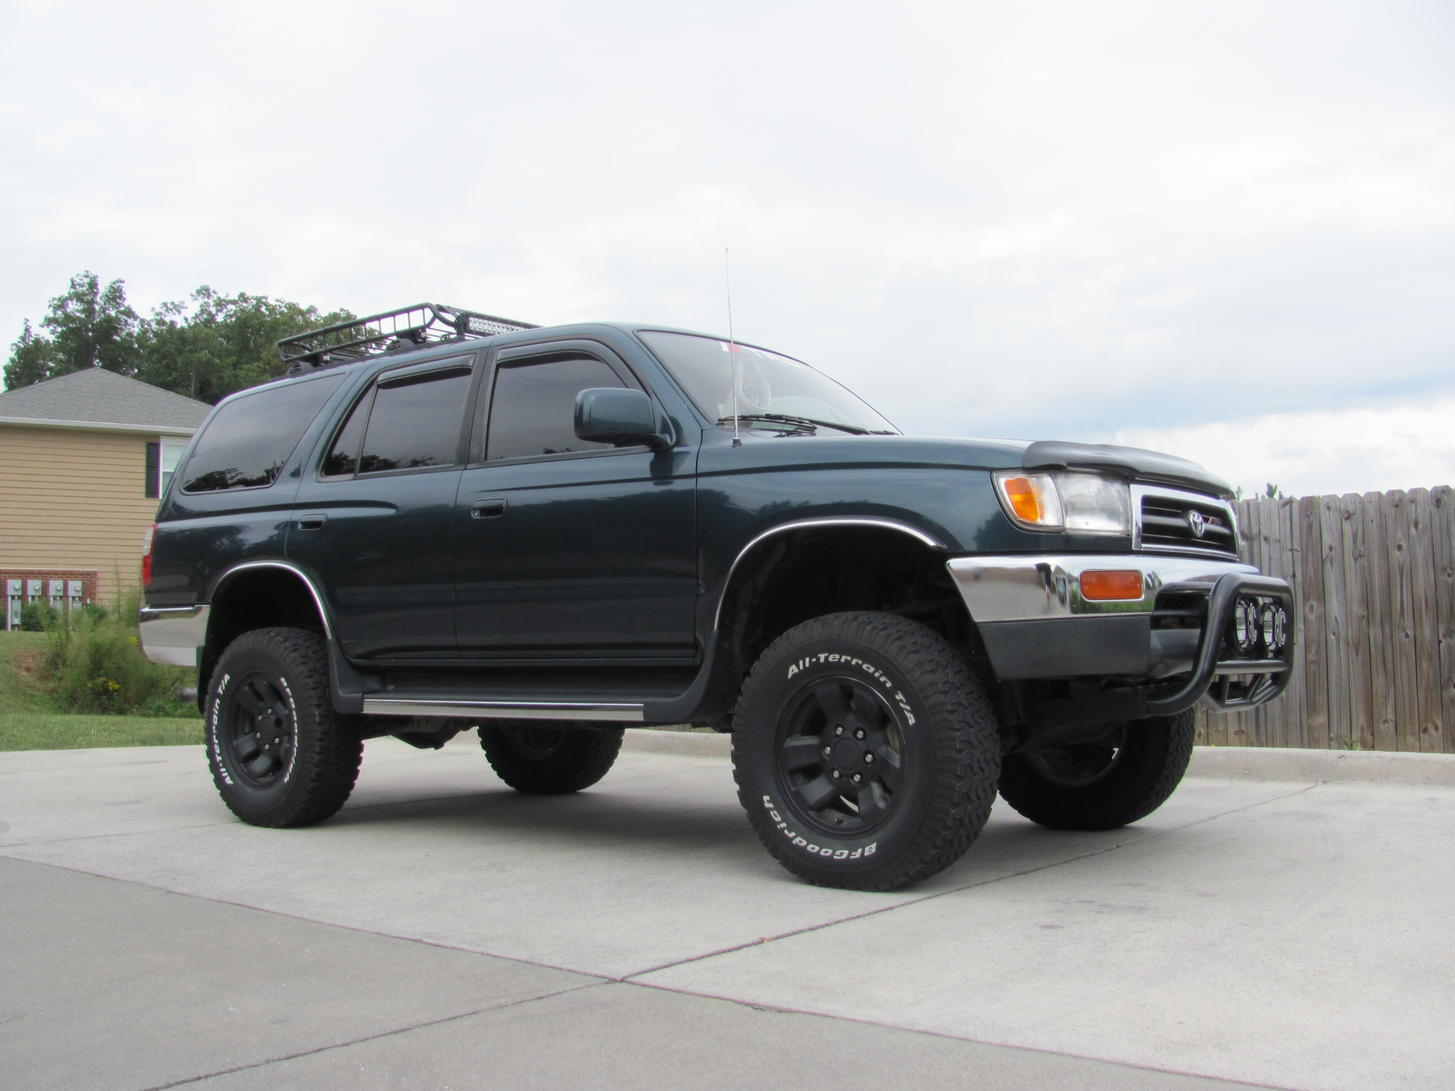 CLEAN LIFTED 98 4Runner for sale!! - Toyota 4Runner Forum - Largest ...